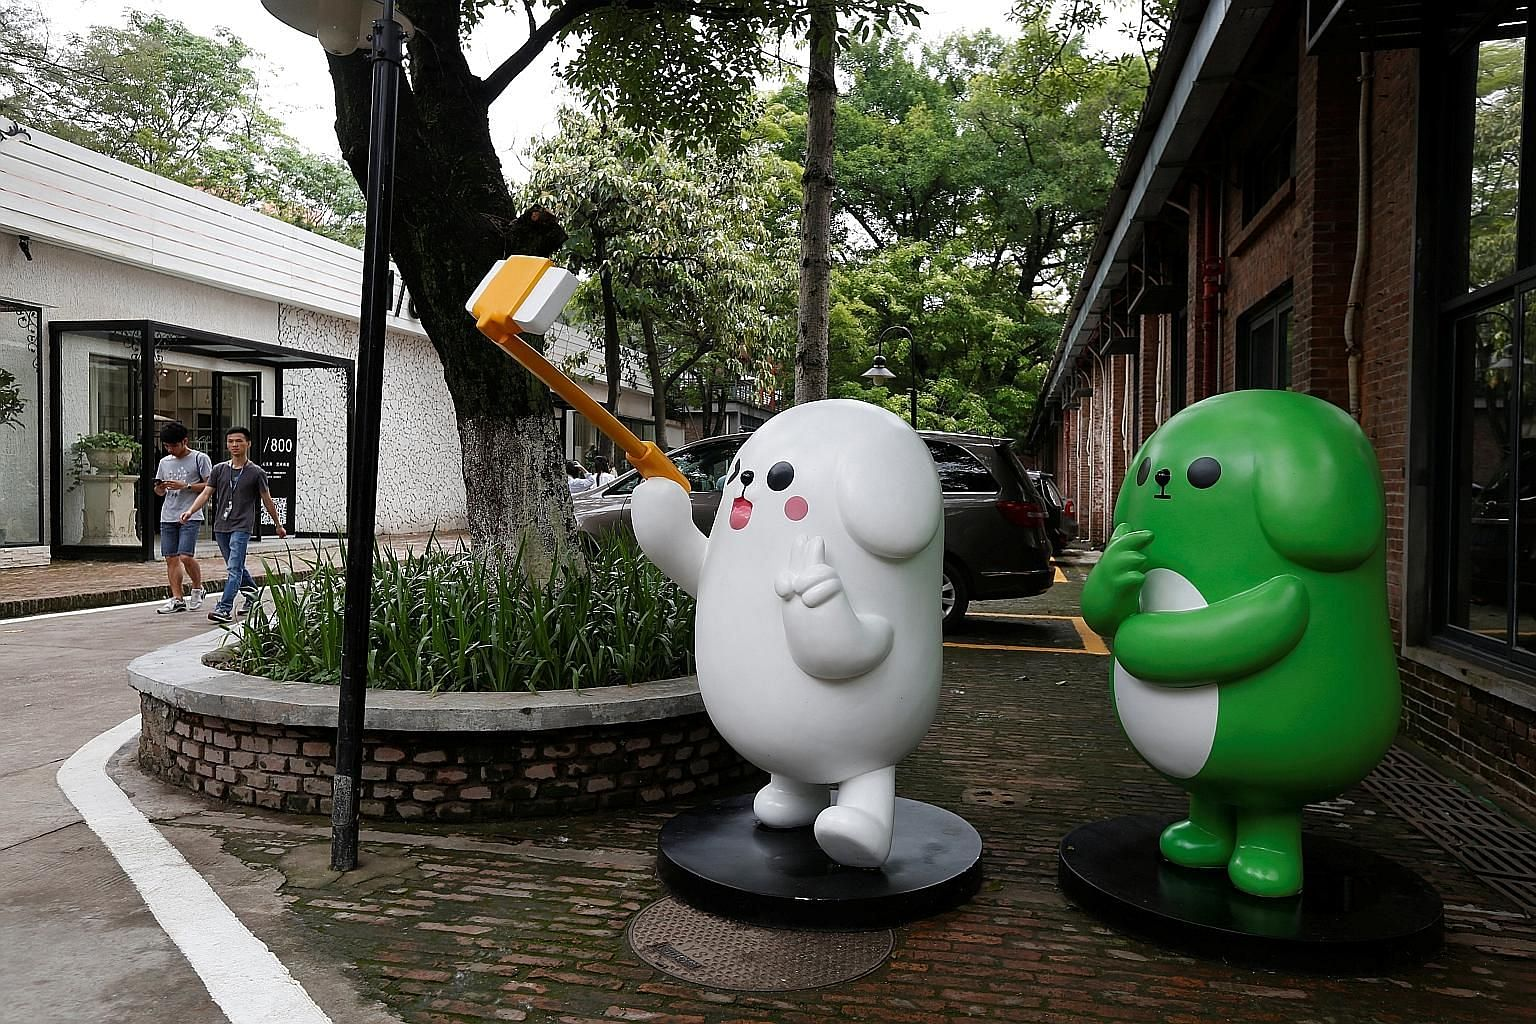 WeChat mascots on display near Tencent's office in Guangzhou. The Internet giant listed in Hong Kong, but other hot New Economy firms seem to be looking outside the region for their IPOs, which has Asian exchanges scrambling to find ways to woo their